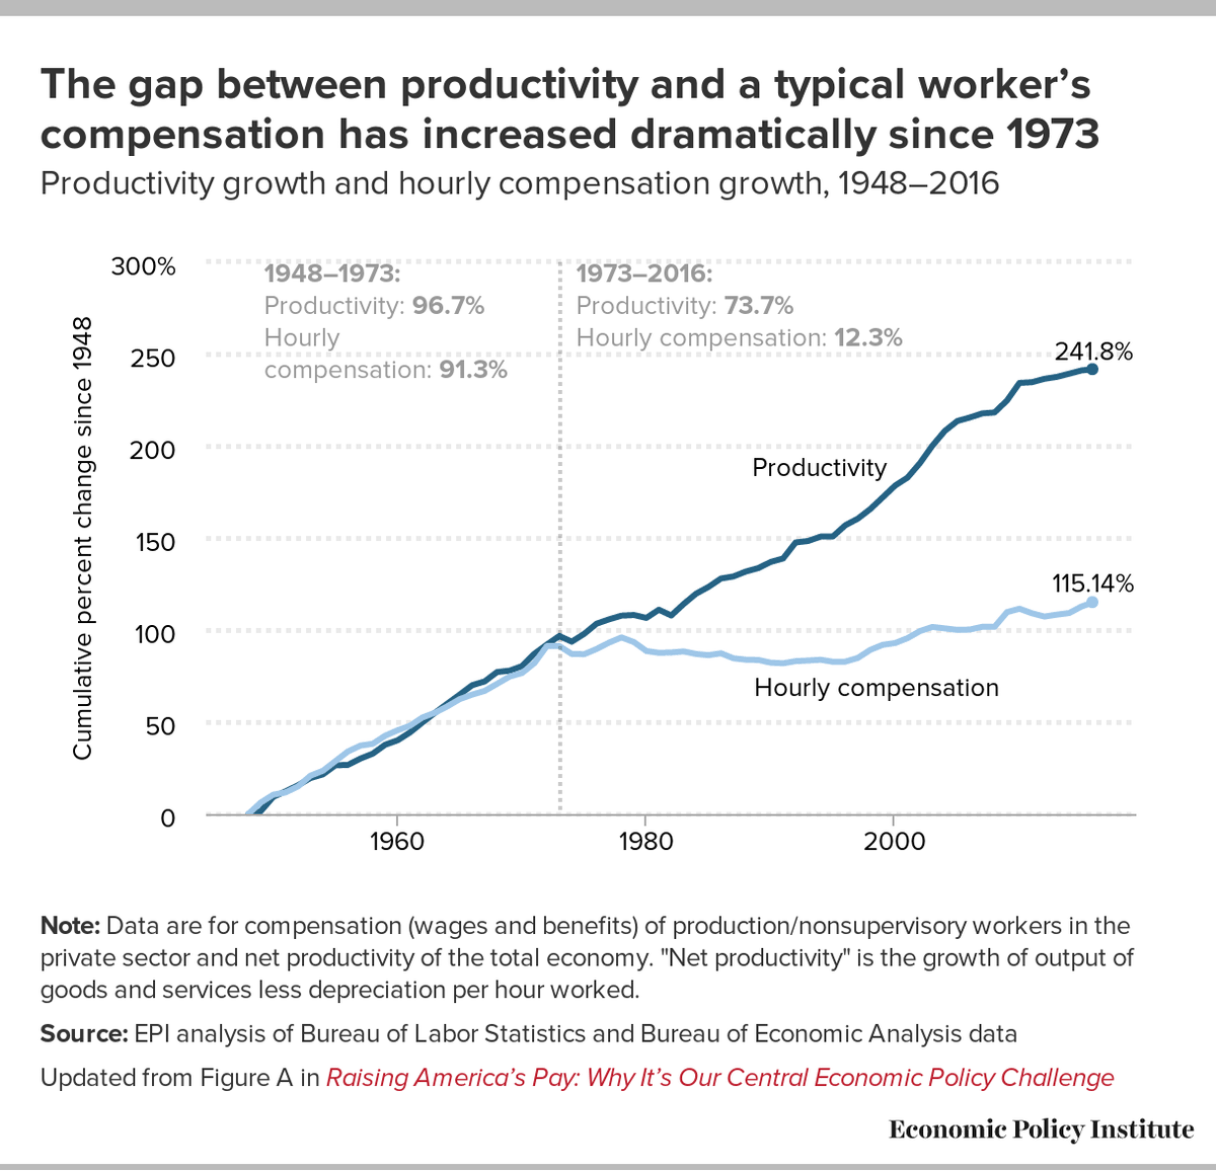 wages vs. productivity 1948 to 2016